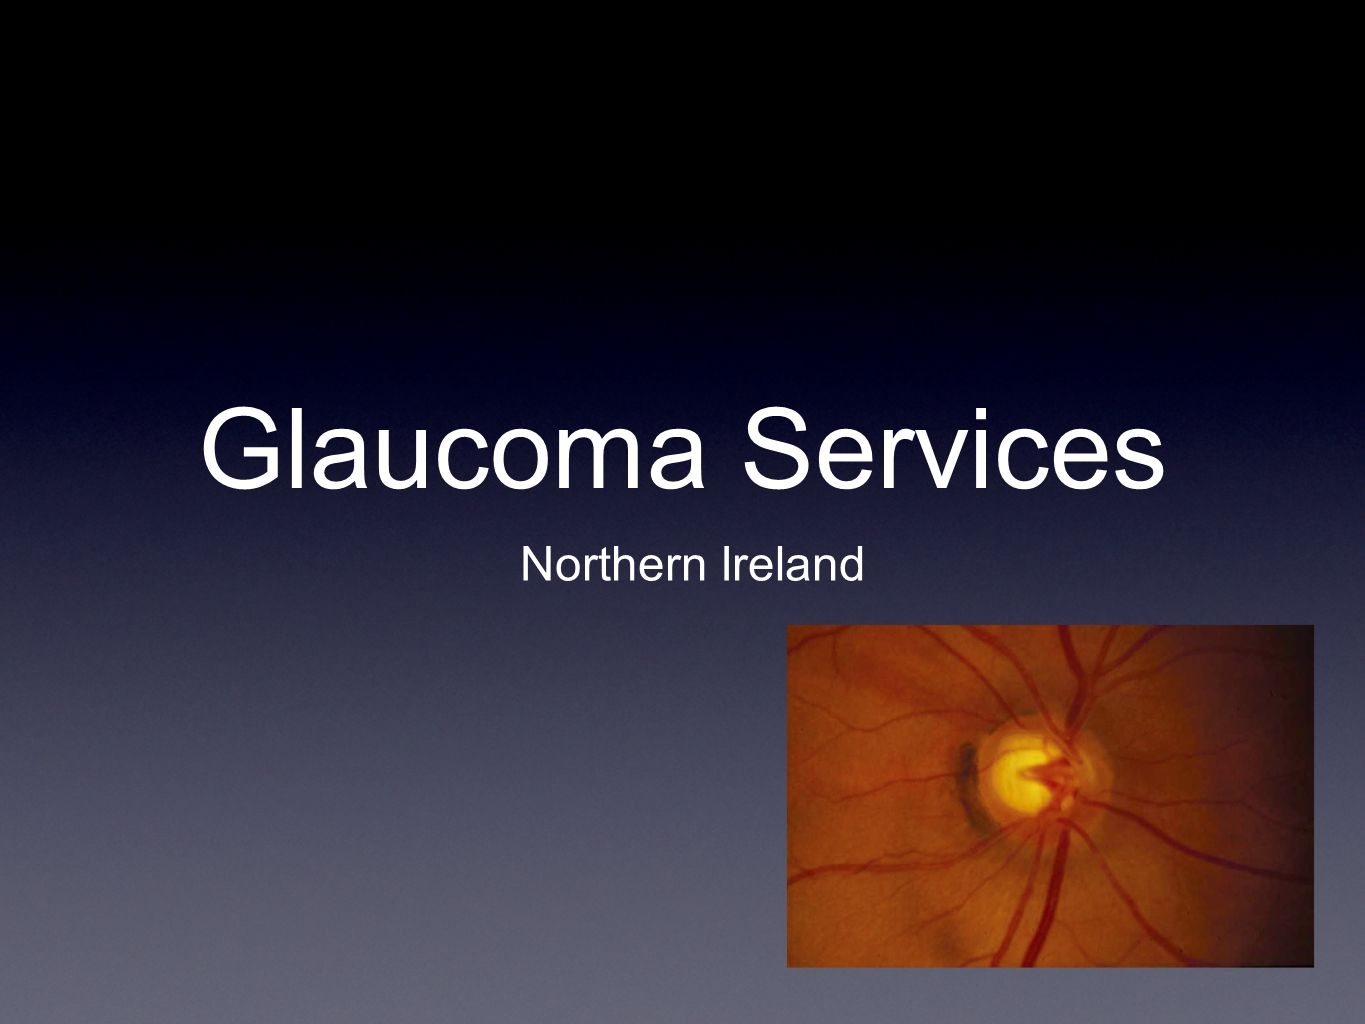 Glaucoma Services Northern Ireland